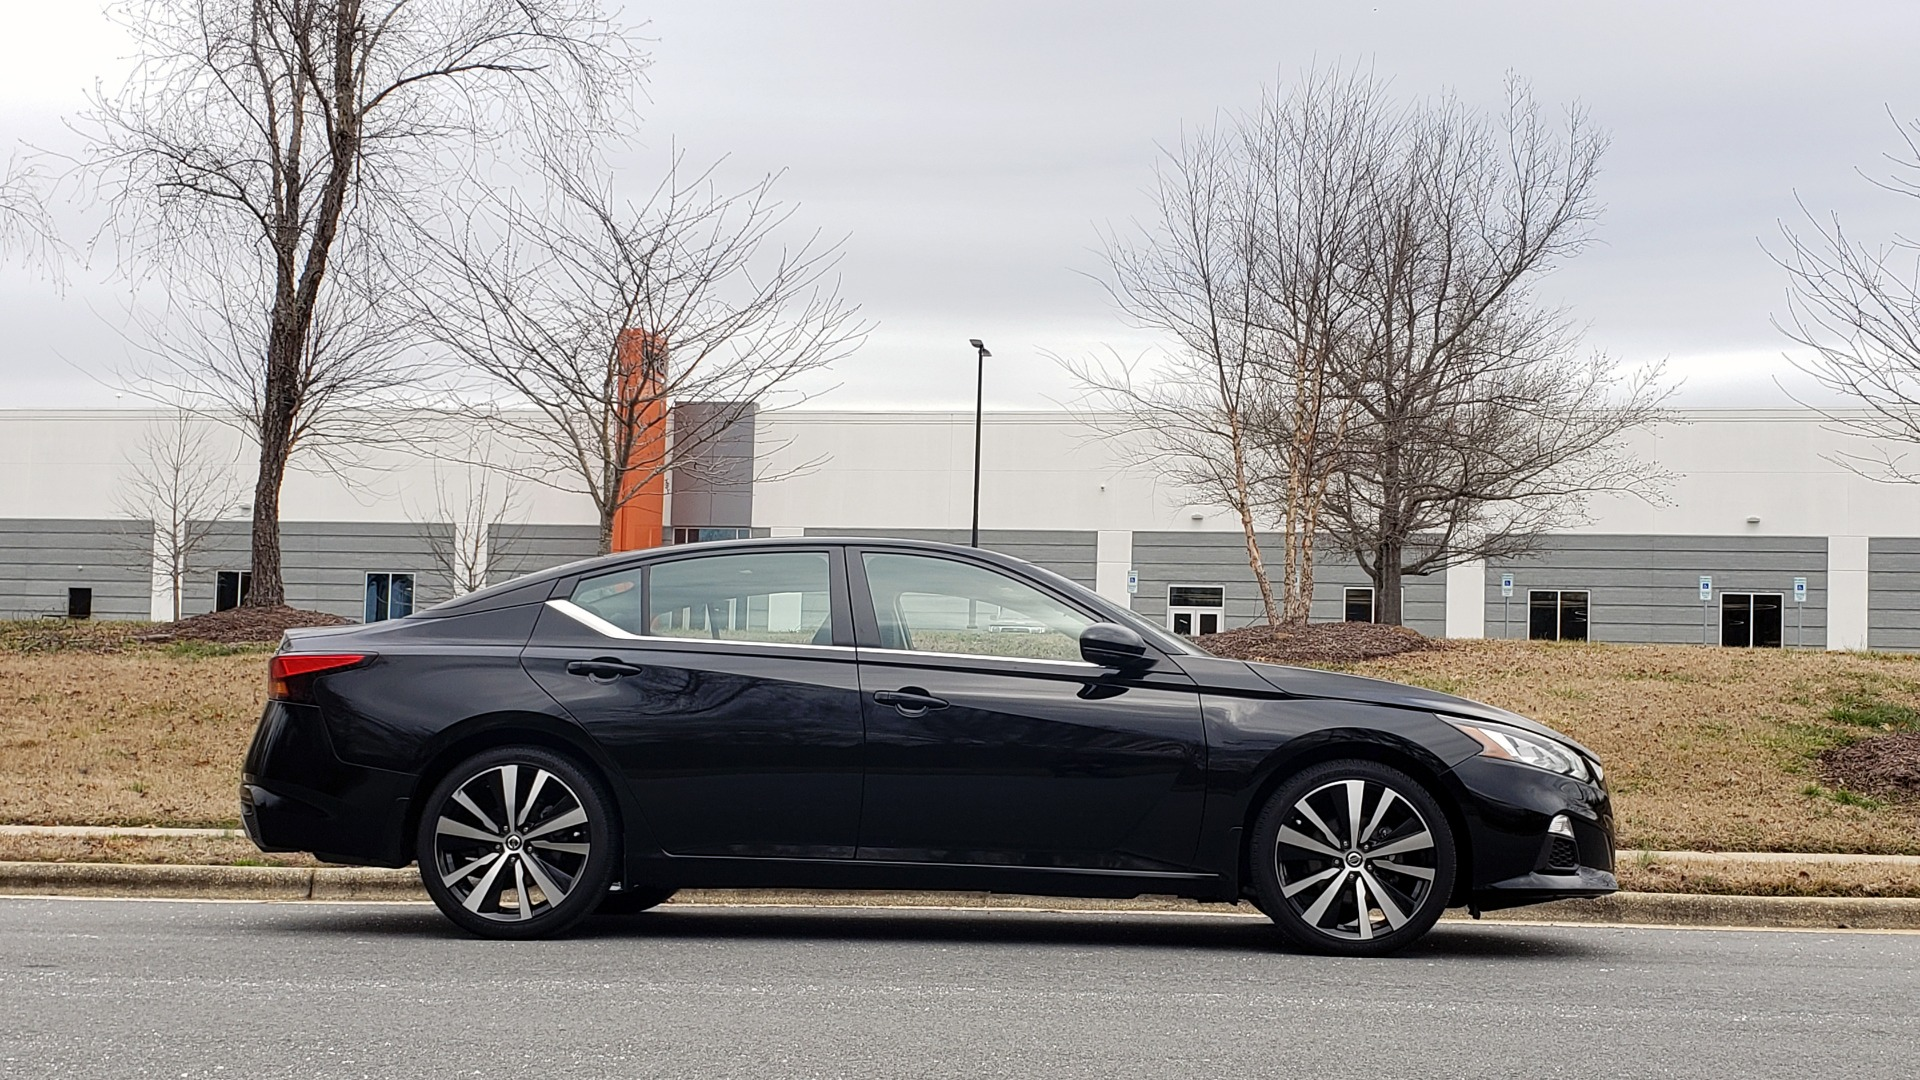 Used 2019 Nissan ALTIMA 2.5 SR PREMIUM / 2.5L / CVT TRANS / HTD STS / SUNROOF / REARVIEW for sale Sold at Formula Imports in Charlotte NC 28227 6